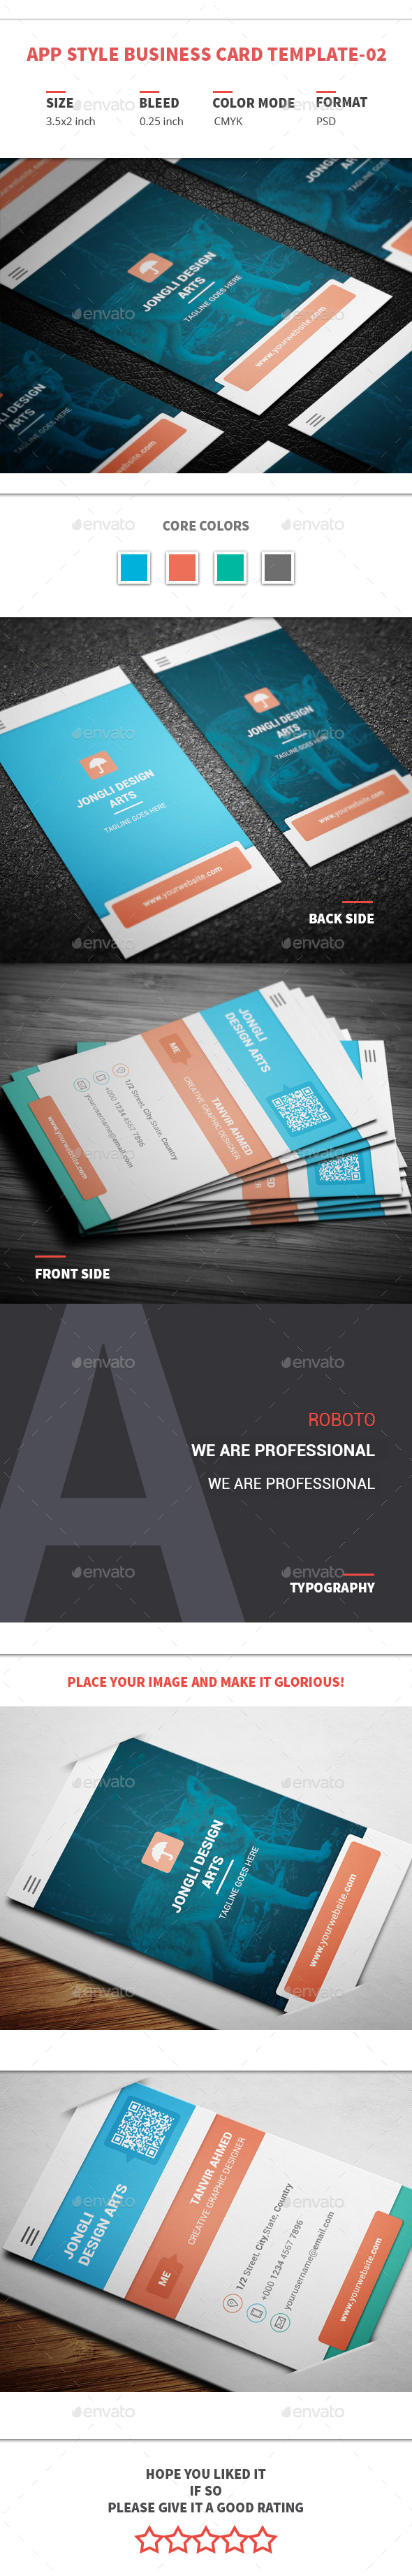 App Style Business Card Template-02 - Creative Business Cards